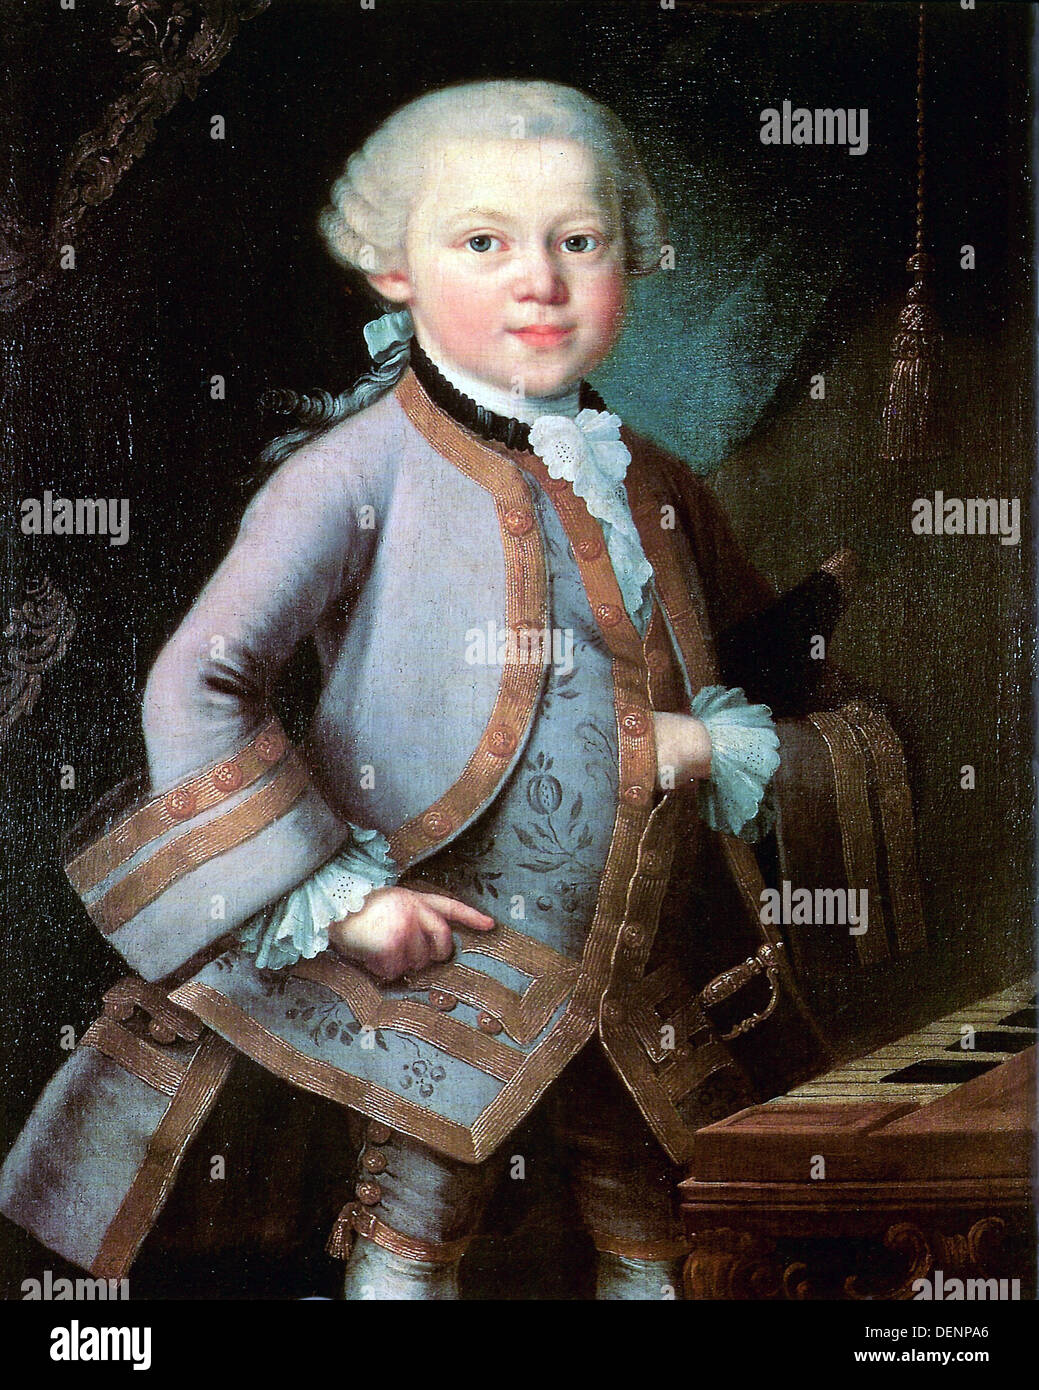 Mozart aged six years old, Wolfgang Amadeus Mozart, composer - Stock Image